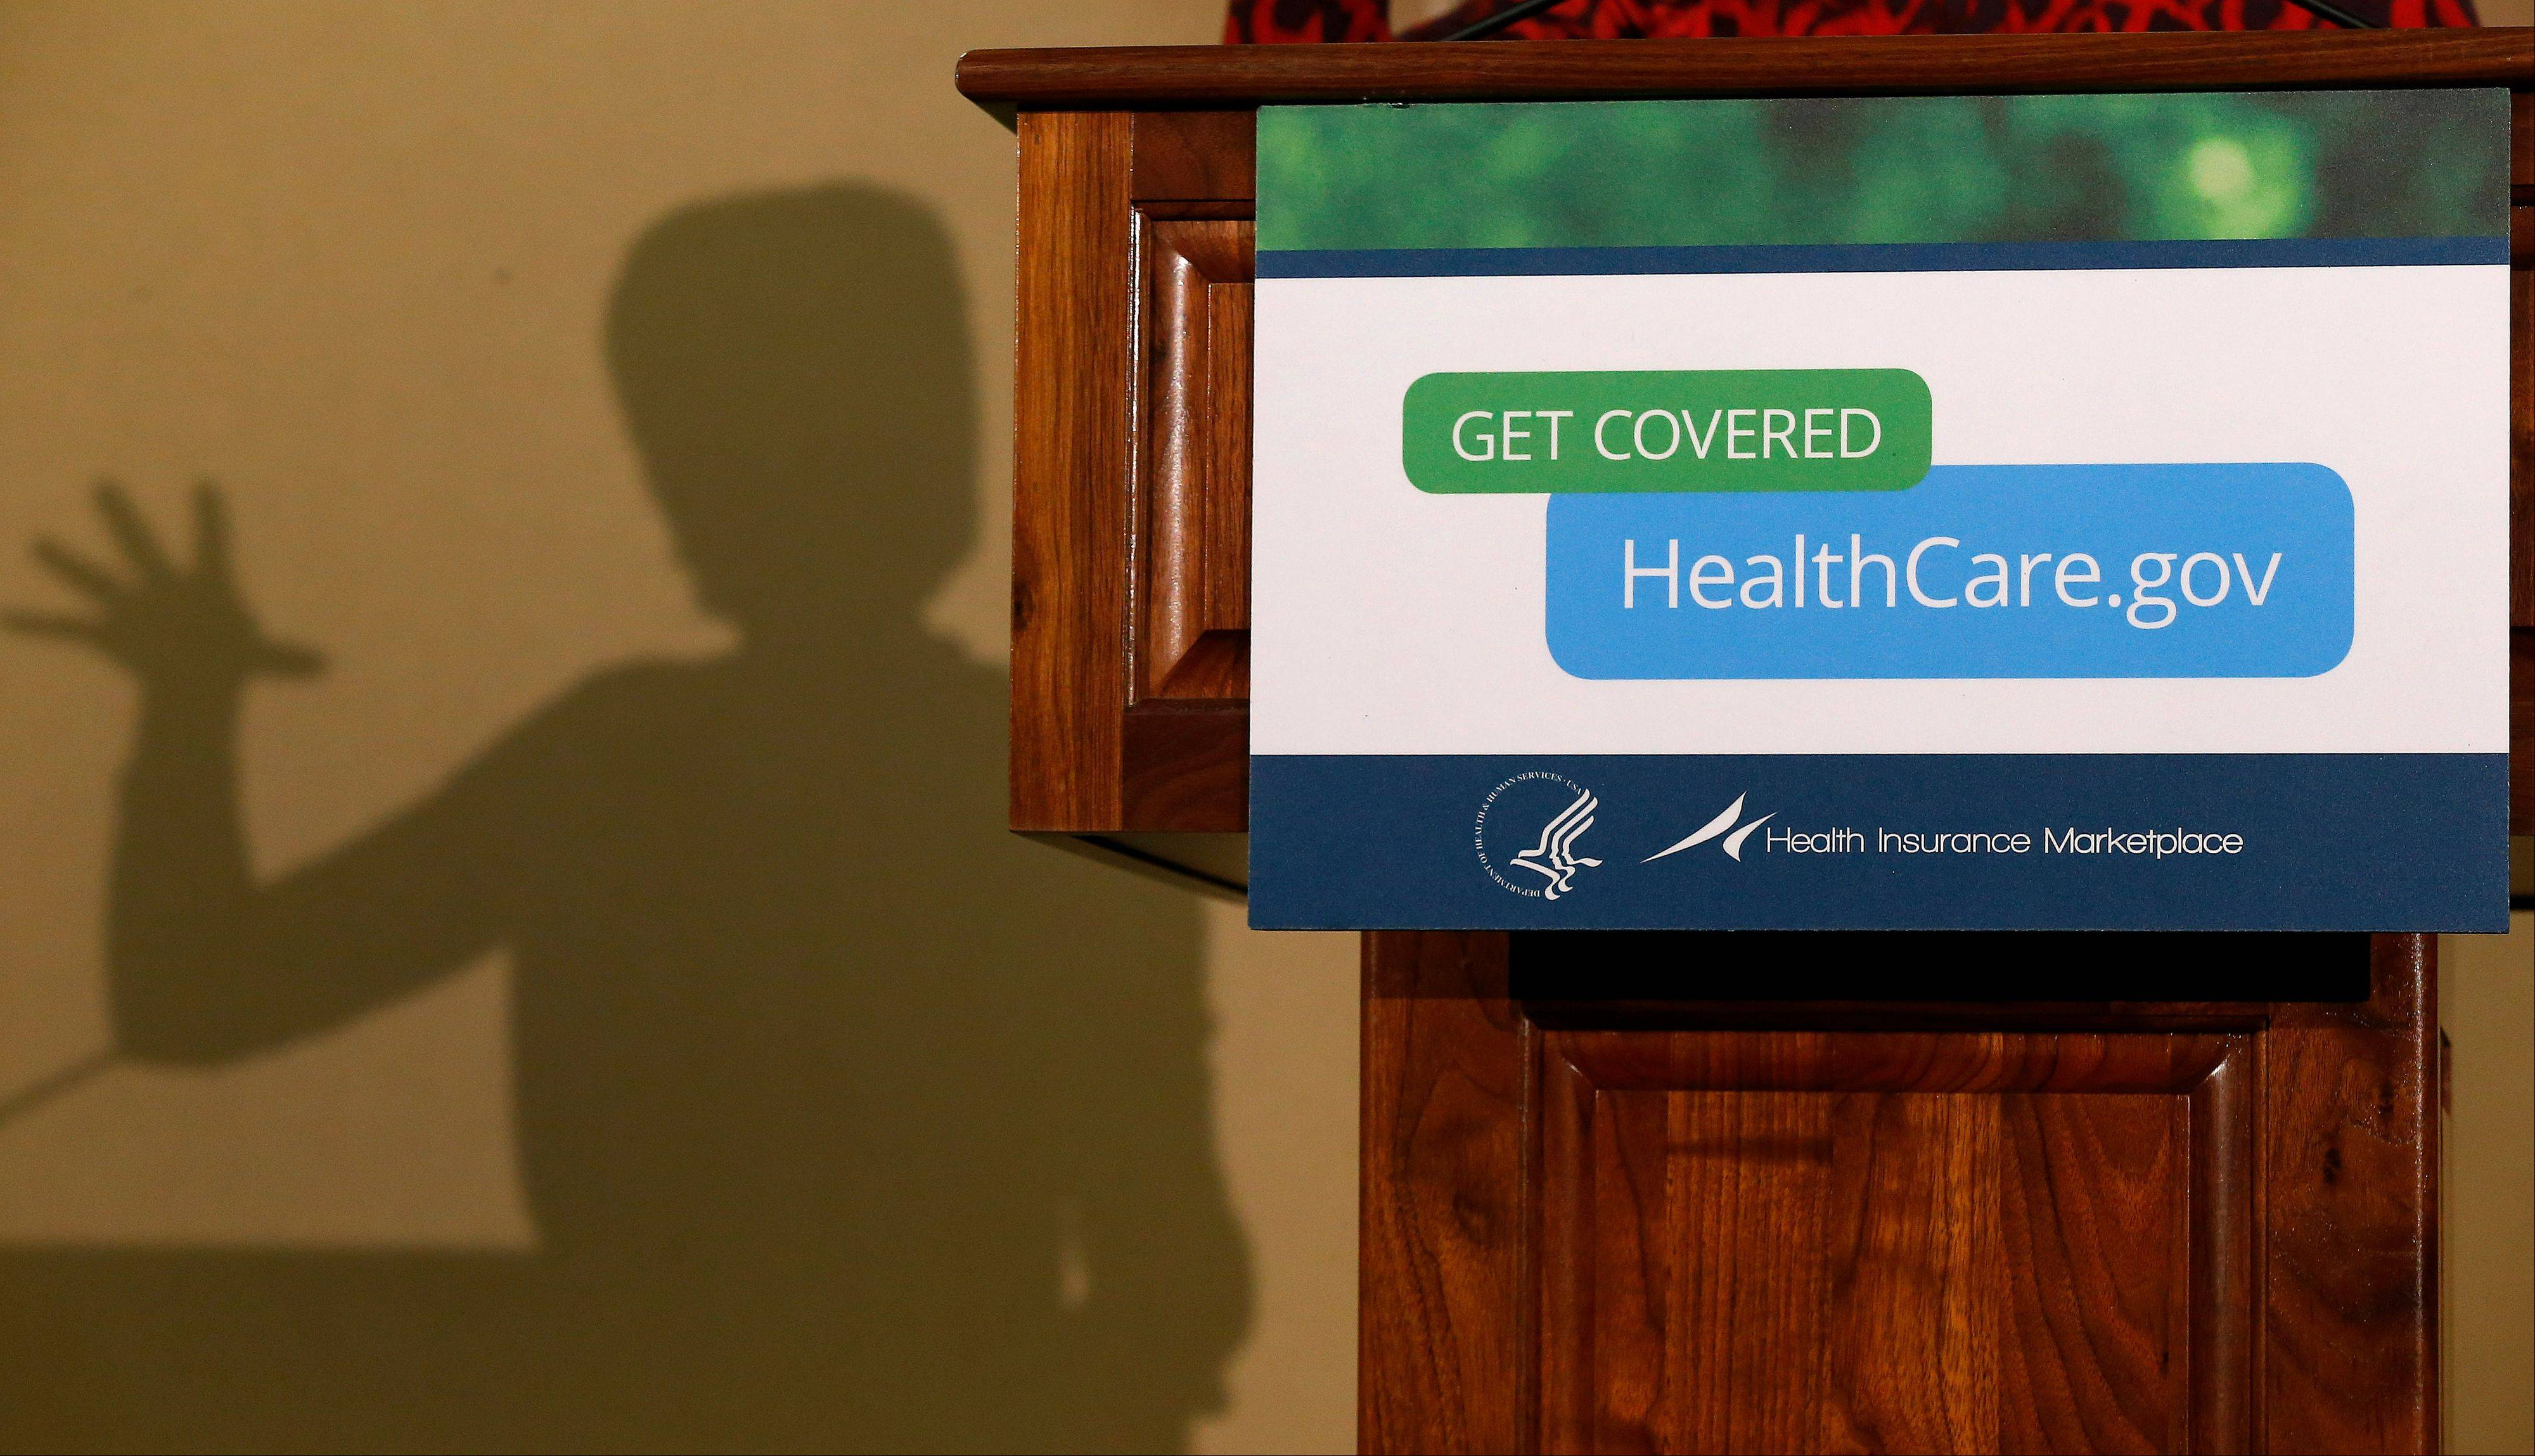 The shadow of Health and Human Services Secretary Kathleen Sebelius is cast on a wall Nov. 15 as she speaks at the Community Health and Social Services Center in Detroit. A month after President Barack Obama announced people could keep insurance policies slated for cancellation under the federal health overhaul, the reversal has gotten a mixed response from insurers, state regulators and consumers.